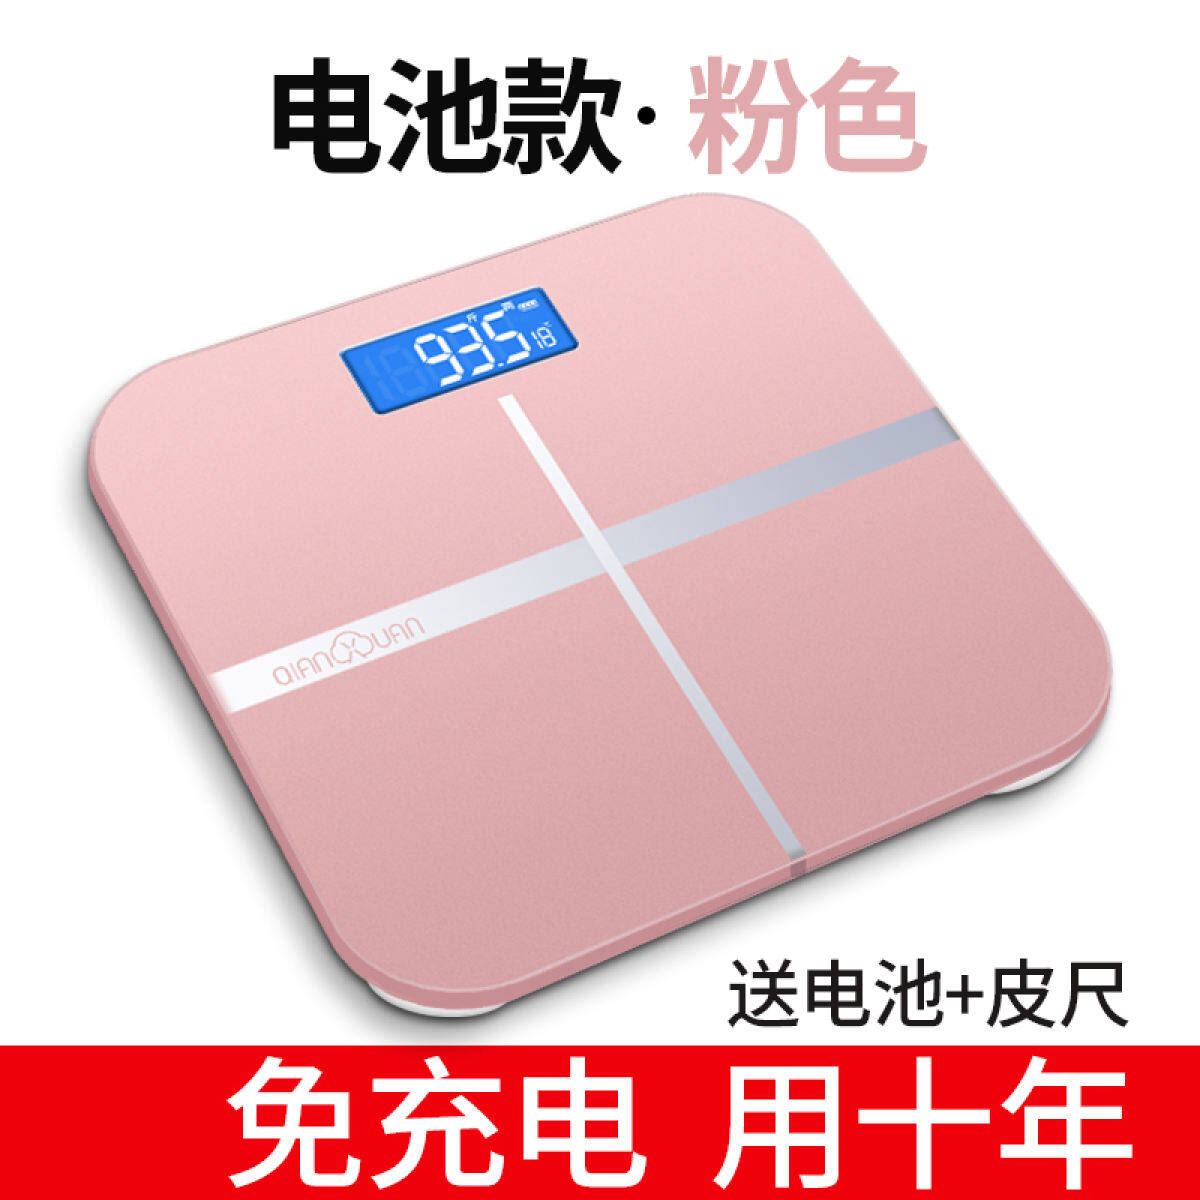 usb rechargeable models home mini electronic weighing scales adult family portable electronic scales precision 0.01 (pink)